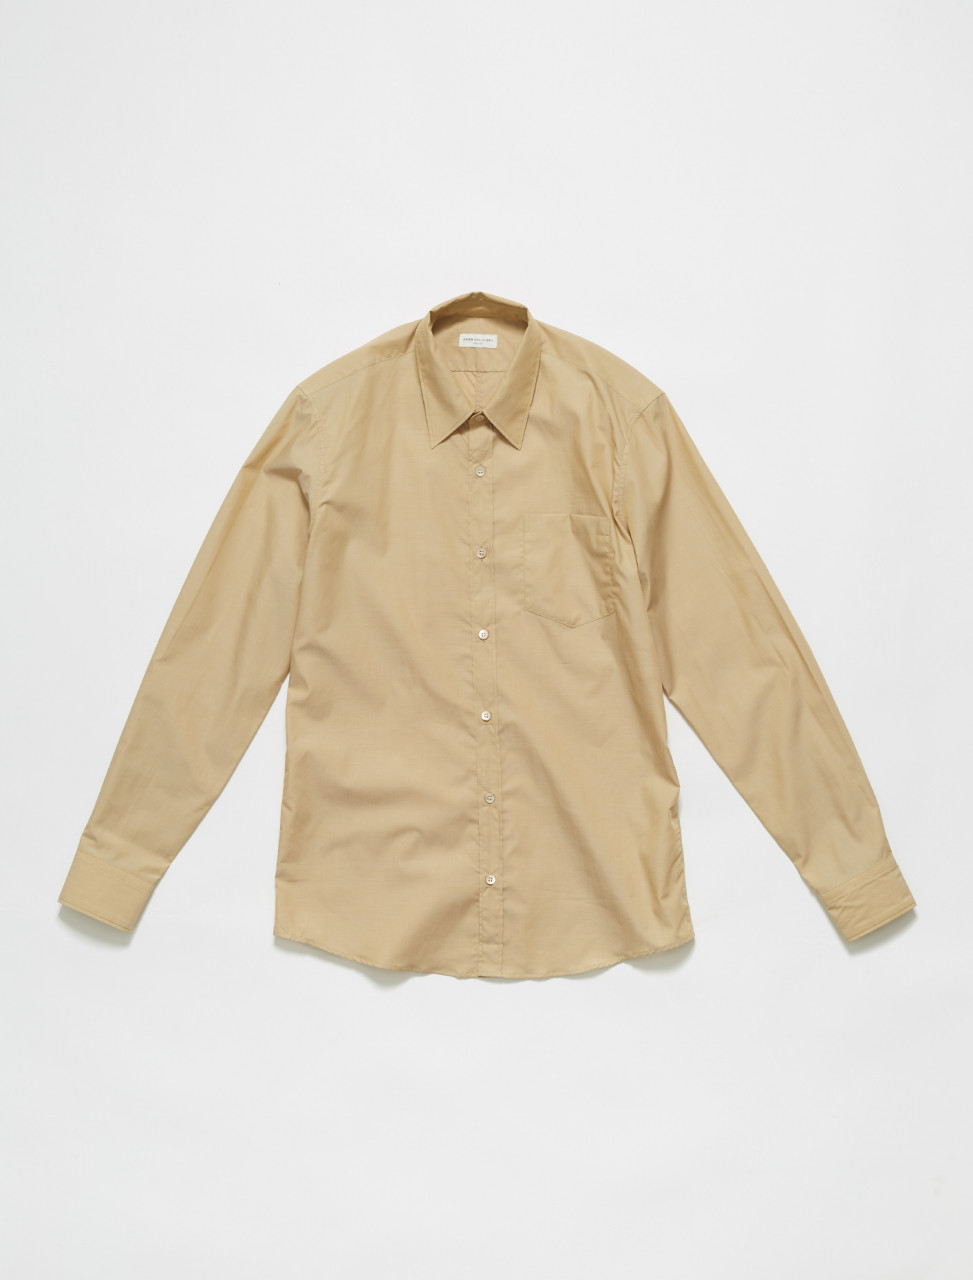 211-20746-2018-101 DRIES VAN NOTEN CORBINO LONG SLEEVE SHIRT IN SAND